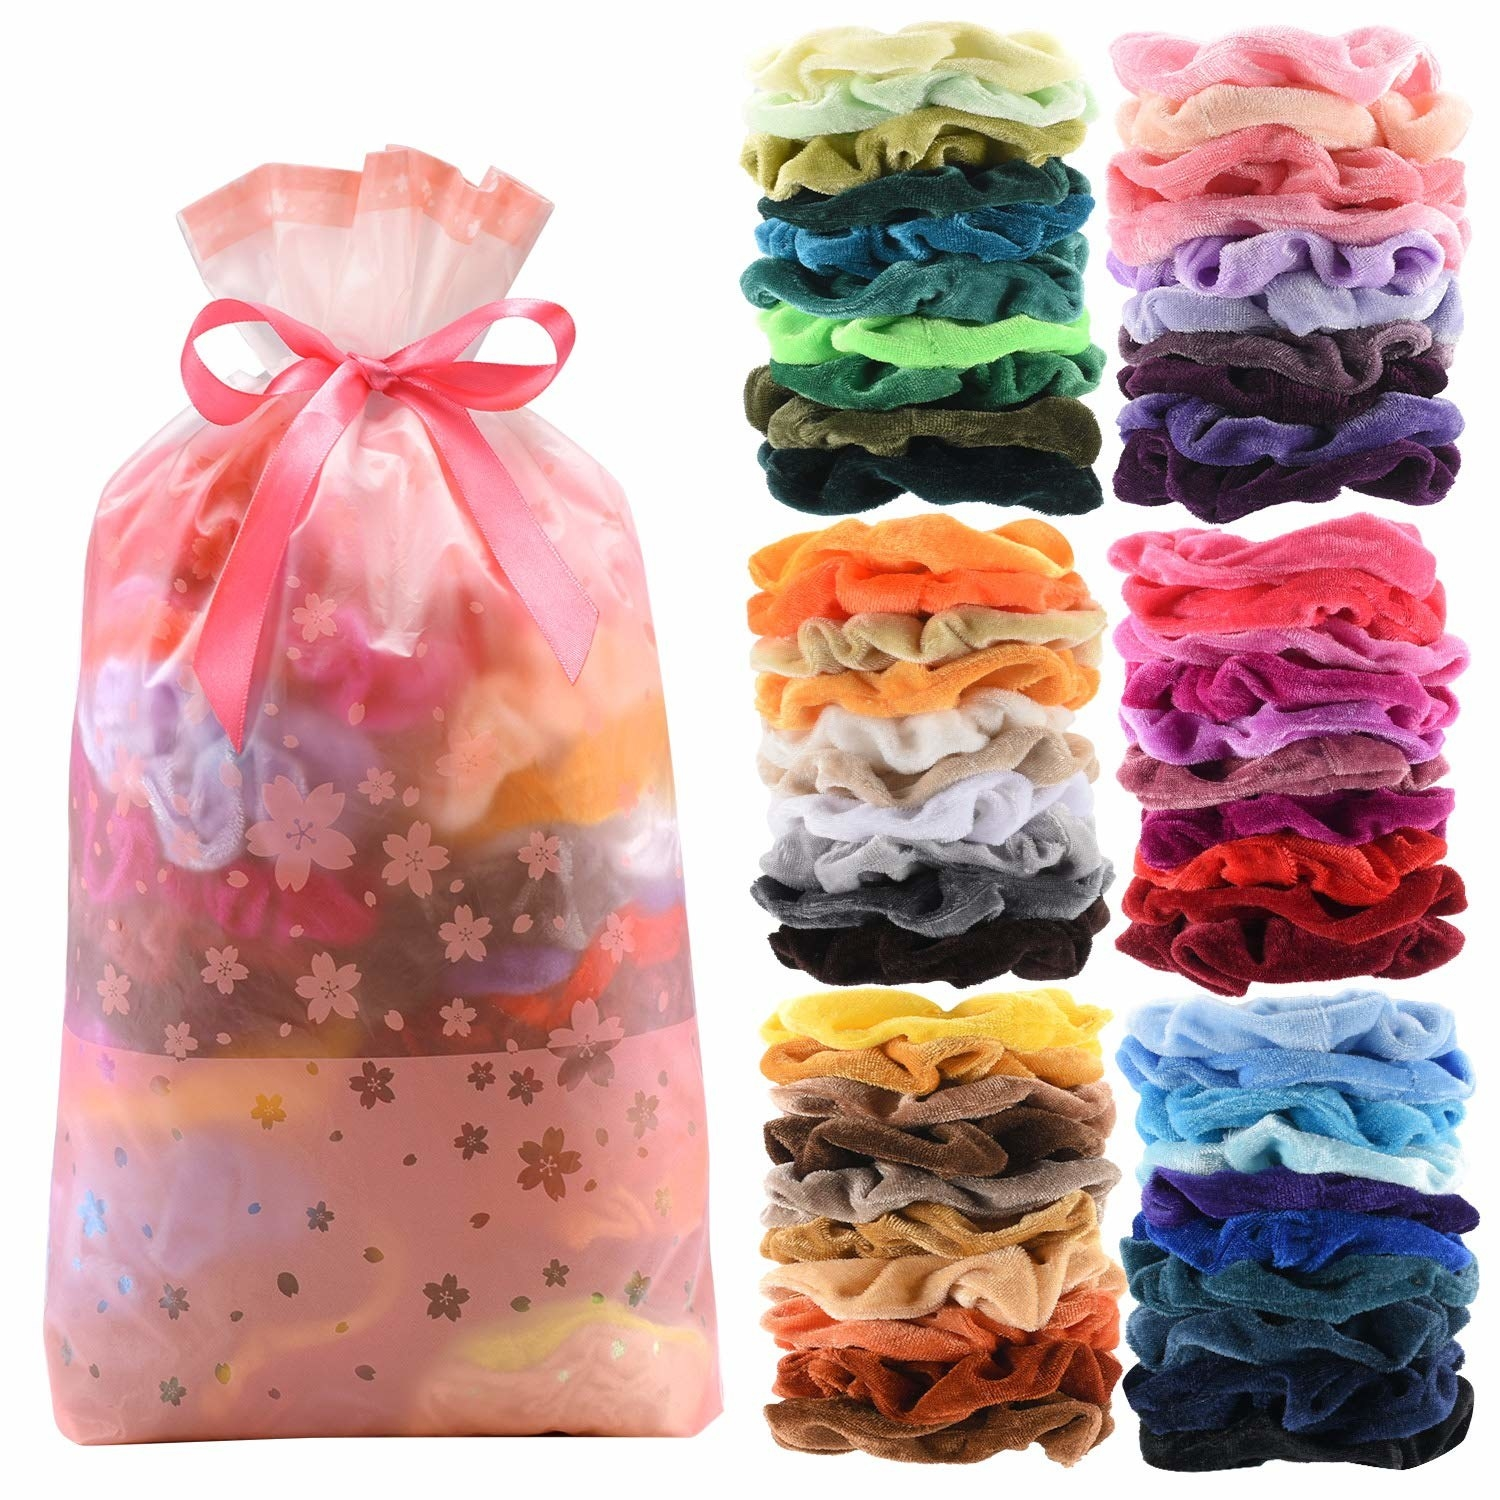 60 velvet scrunchies in a variety of colors and a bag tied with a ribbon